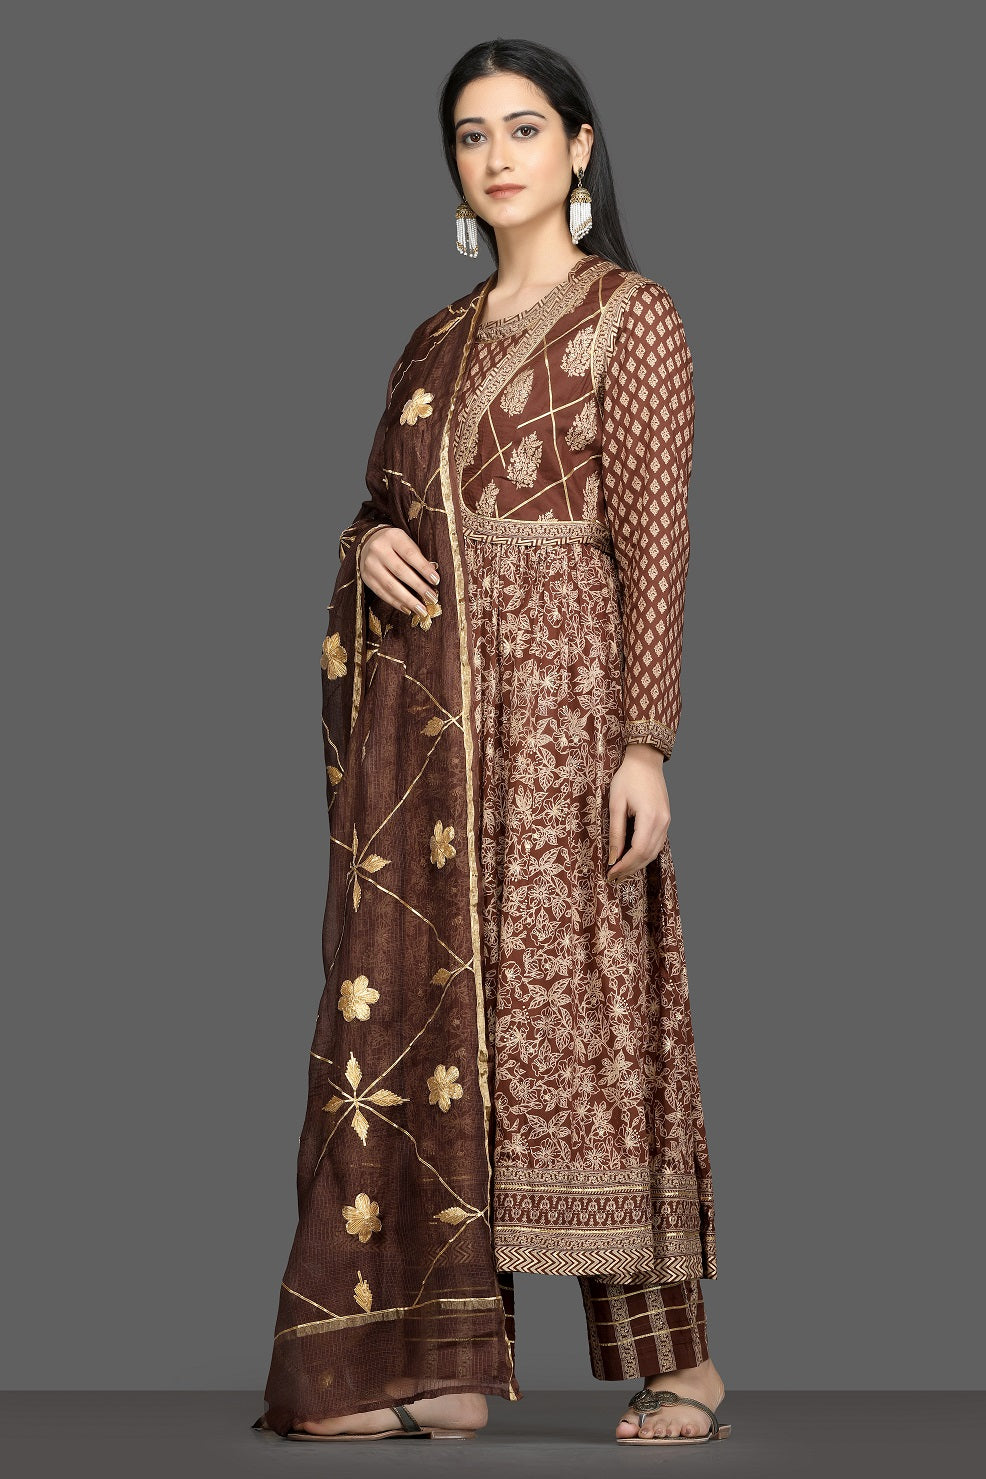 Buy beautiful brown printed silk Anarkali suit online in USA with waist jacket and dupatta. Shop for parties and festive occasions stunning designer suits, Anarkali suits, designer gowns, wedding lehengas from Pure Elegance Indian fashion store in USA.-left